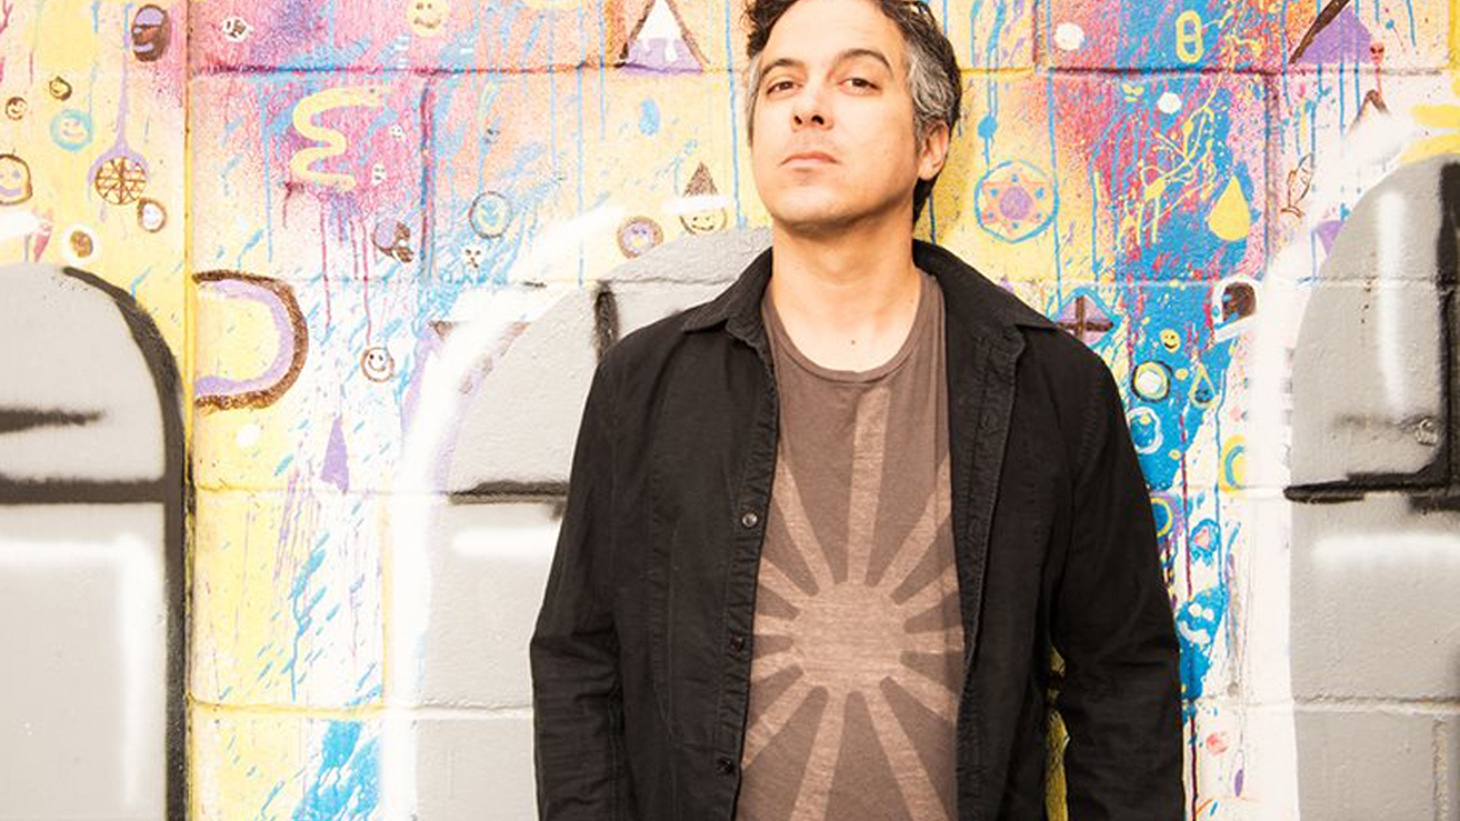 M. Ward joins us for a live session on the release date for his eighth solo album.